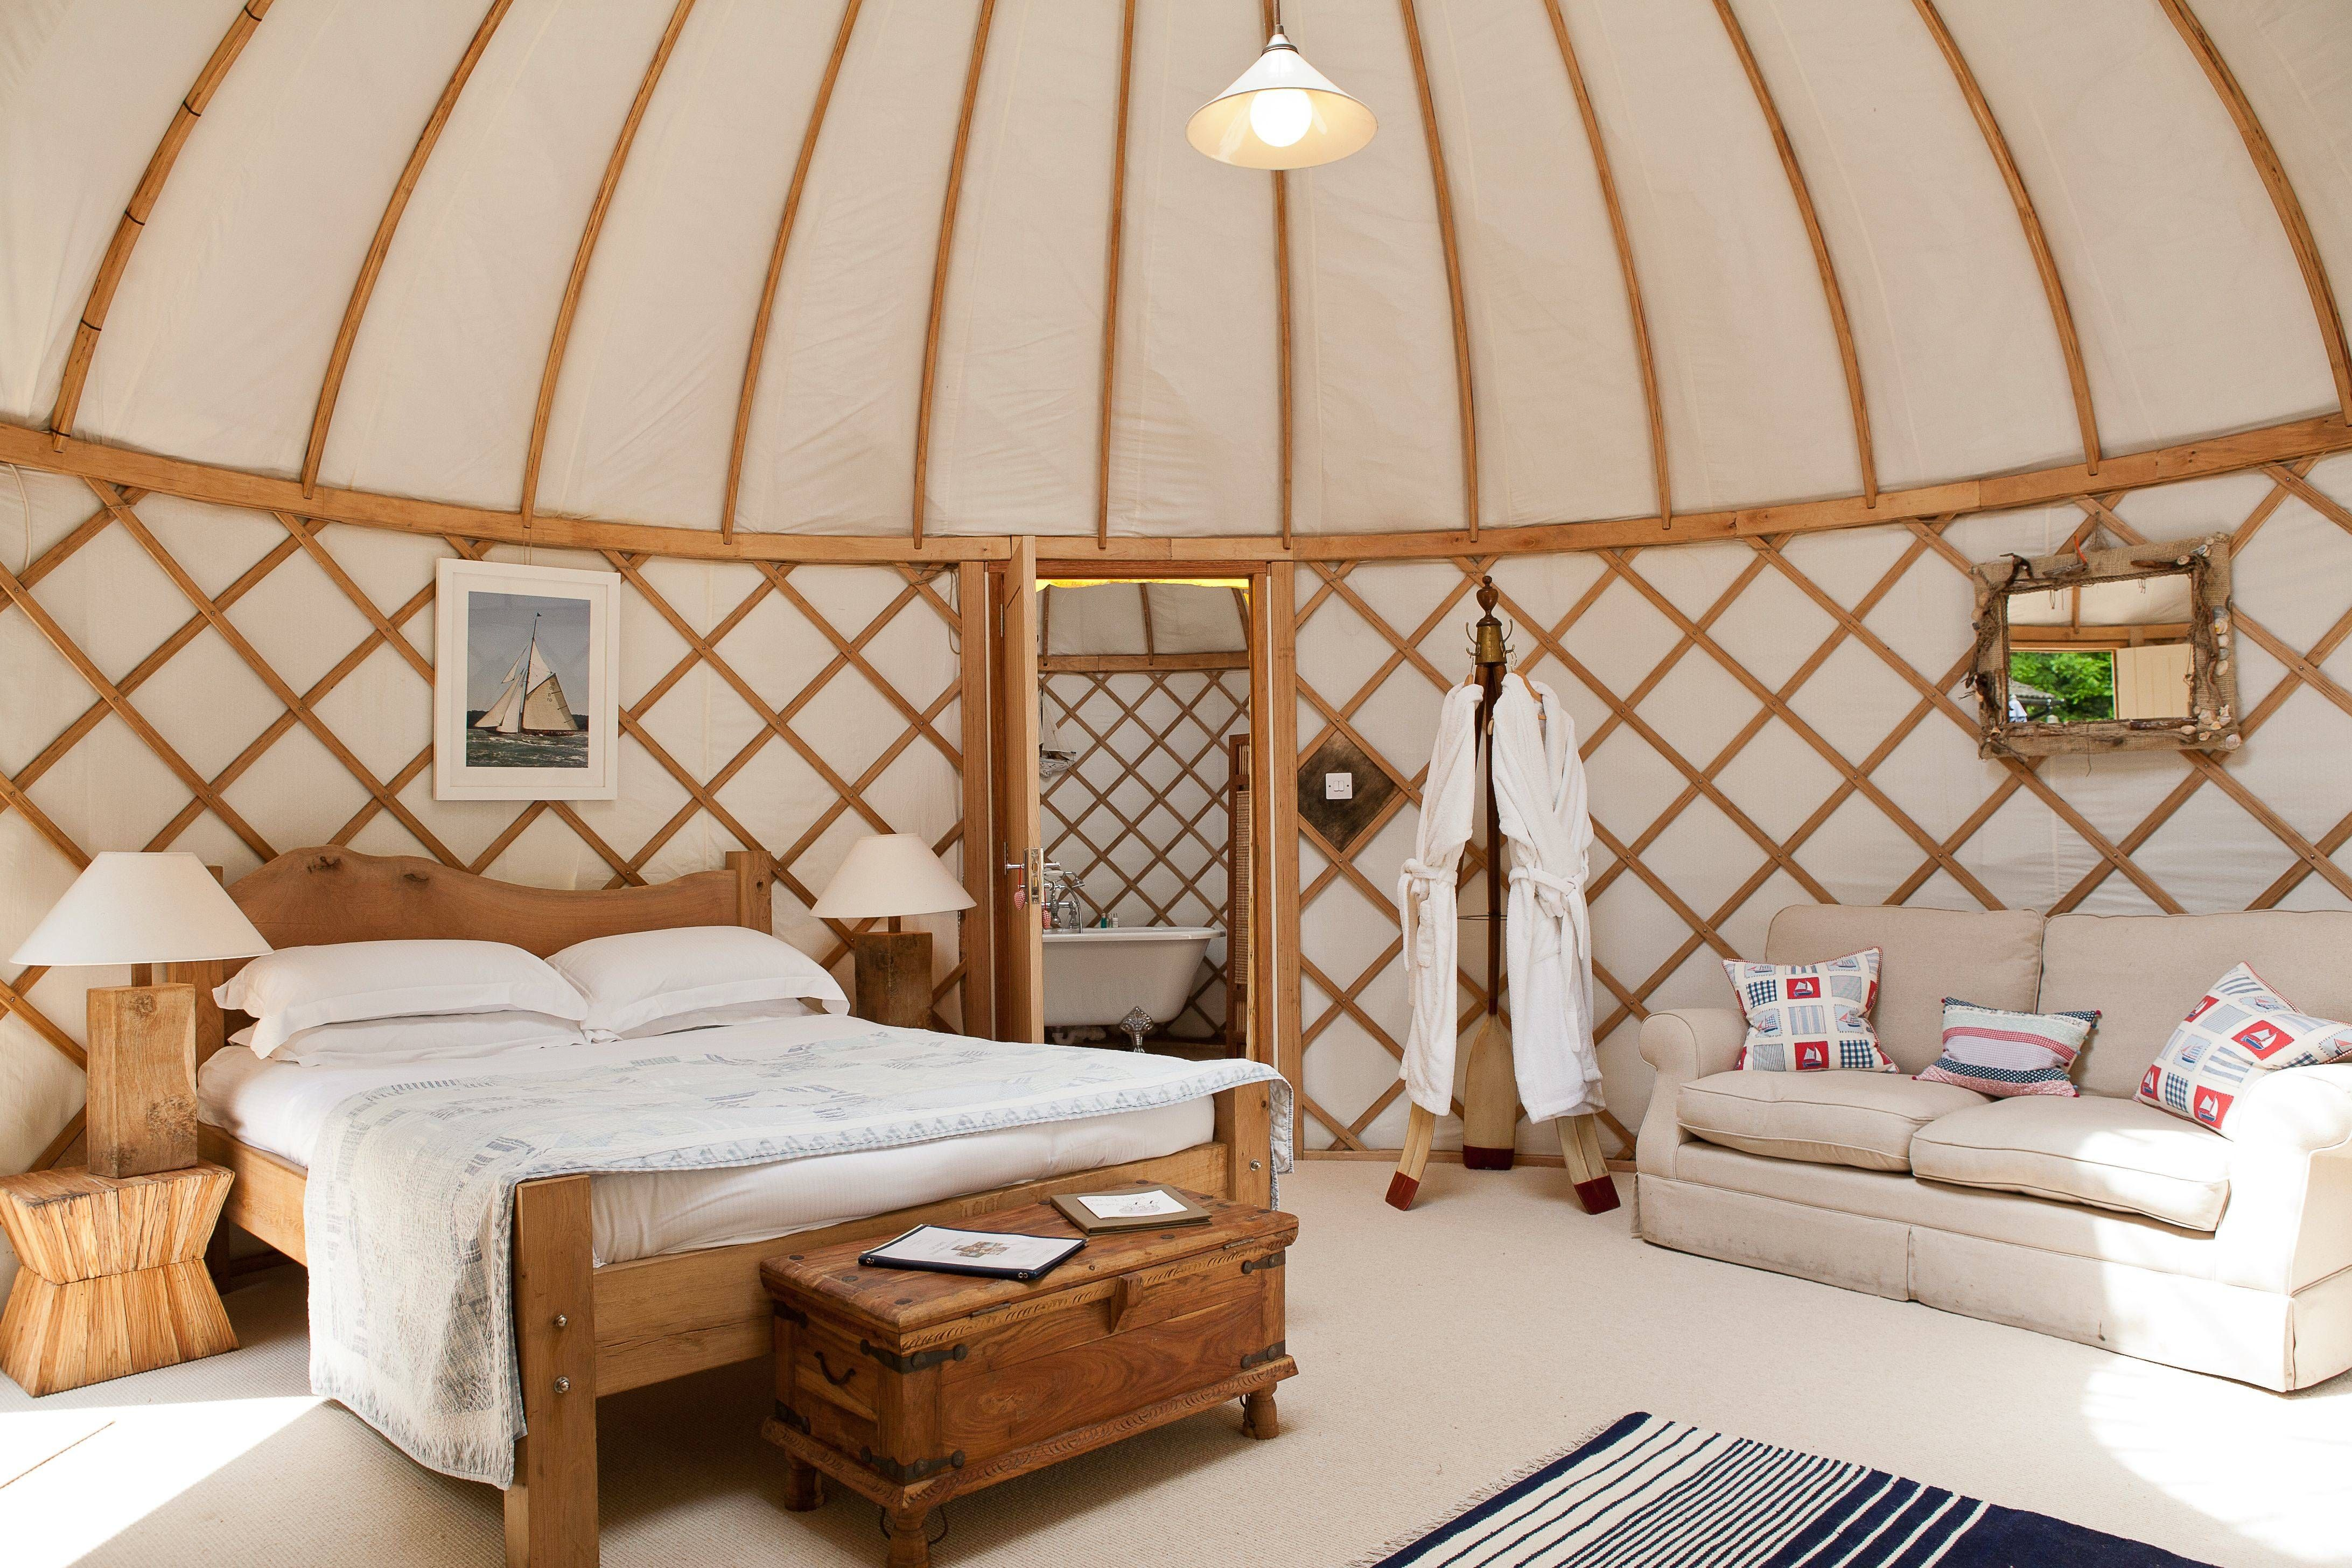 Bathroom Yurt priory bay yurt luxury interior - nuther gorgeous view of how